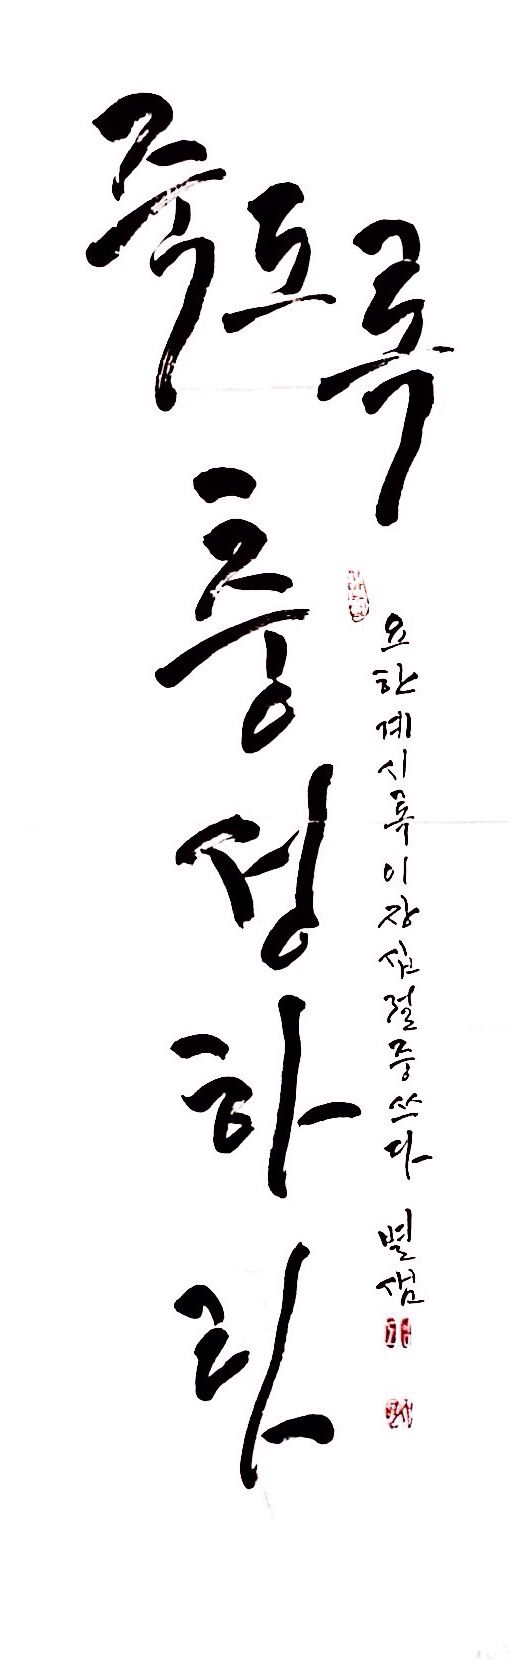 Korean calligraphy by Byulsam - Be faithful, even to the point of death.